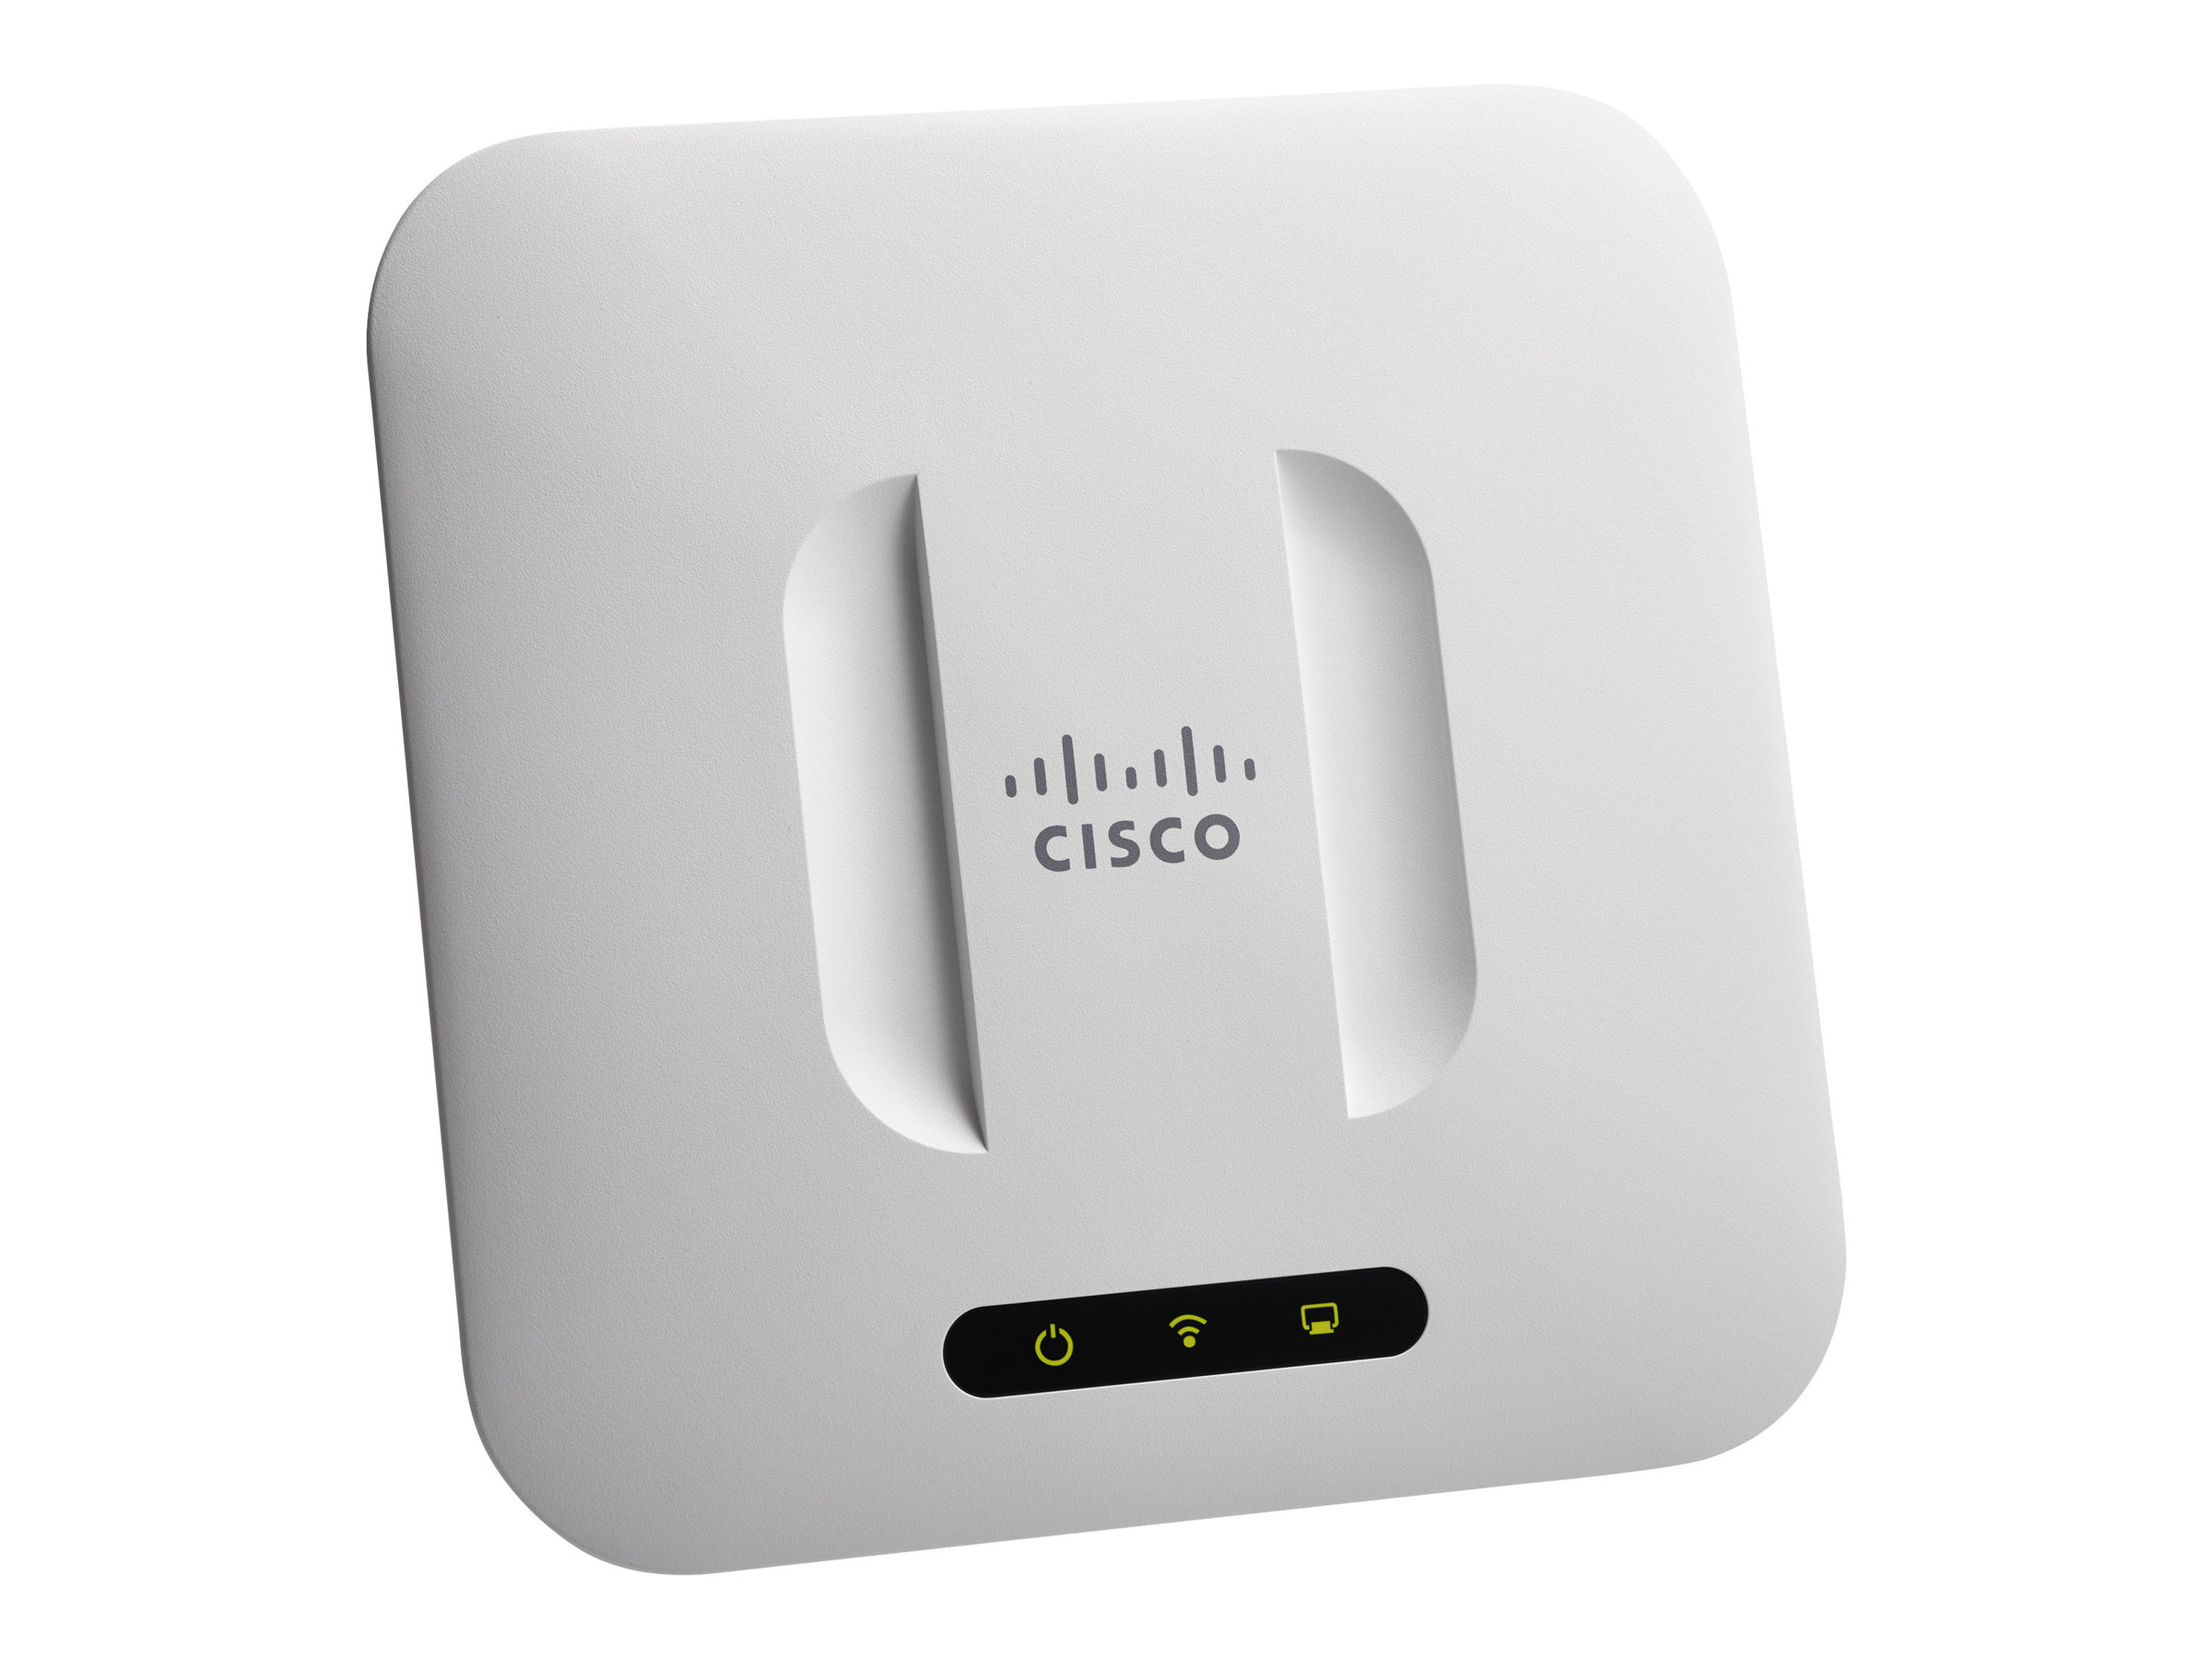 Cisco Small Business WAP371 - Drahtlose Basisstation